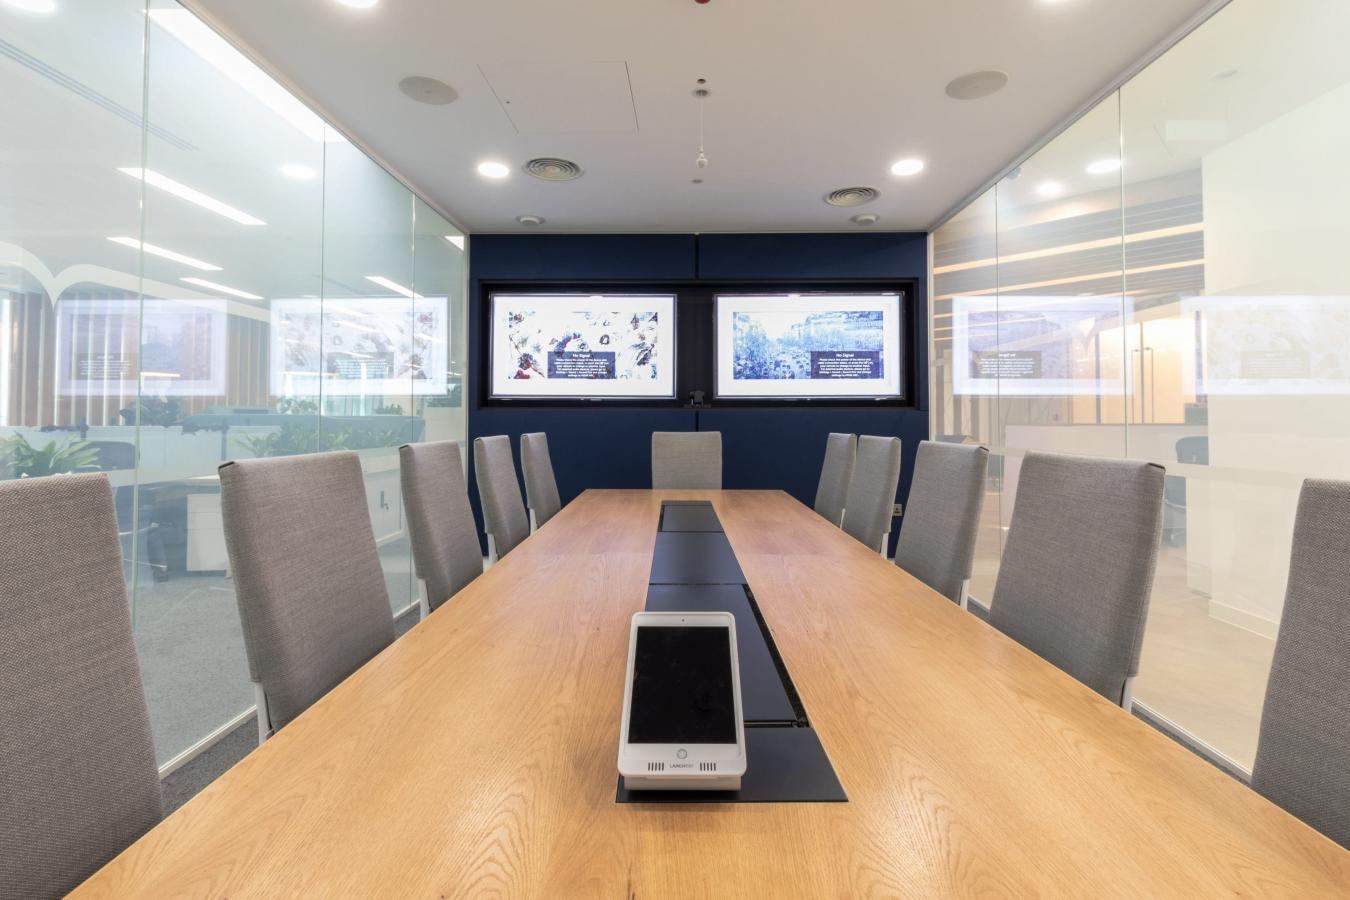 Nord Anglia Education Office 21 boardroom smar 5EB4Q